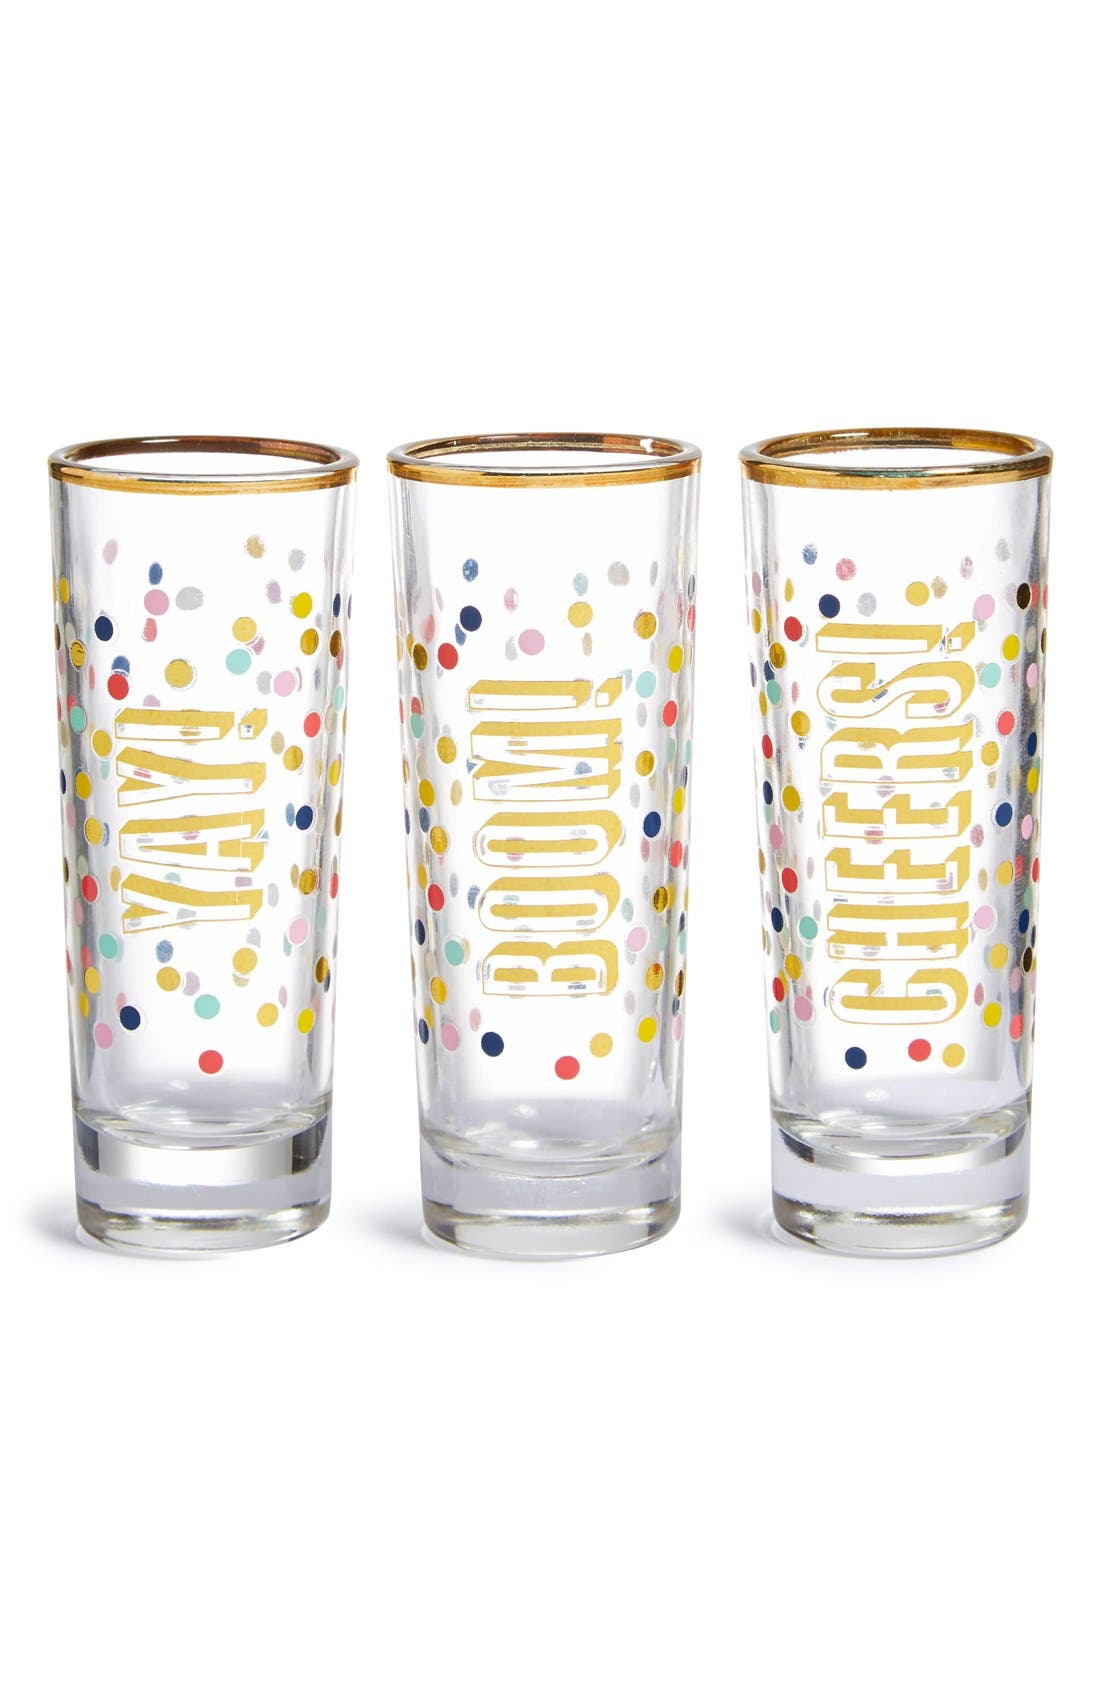 Main Image - Slant Collections 'Yay, Boom, Cheers' Shot Glasses (Set of 3)